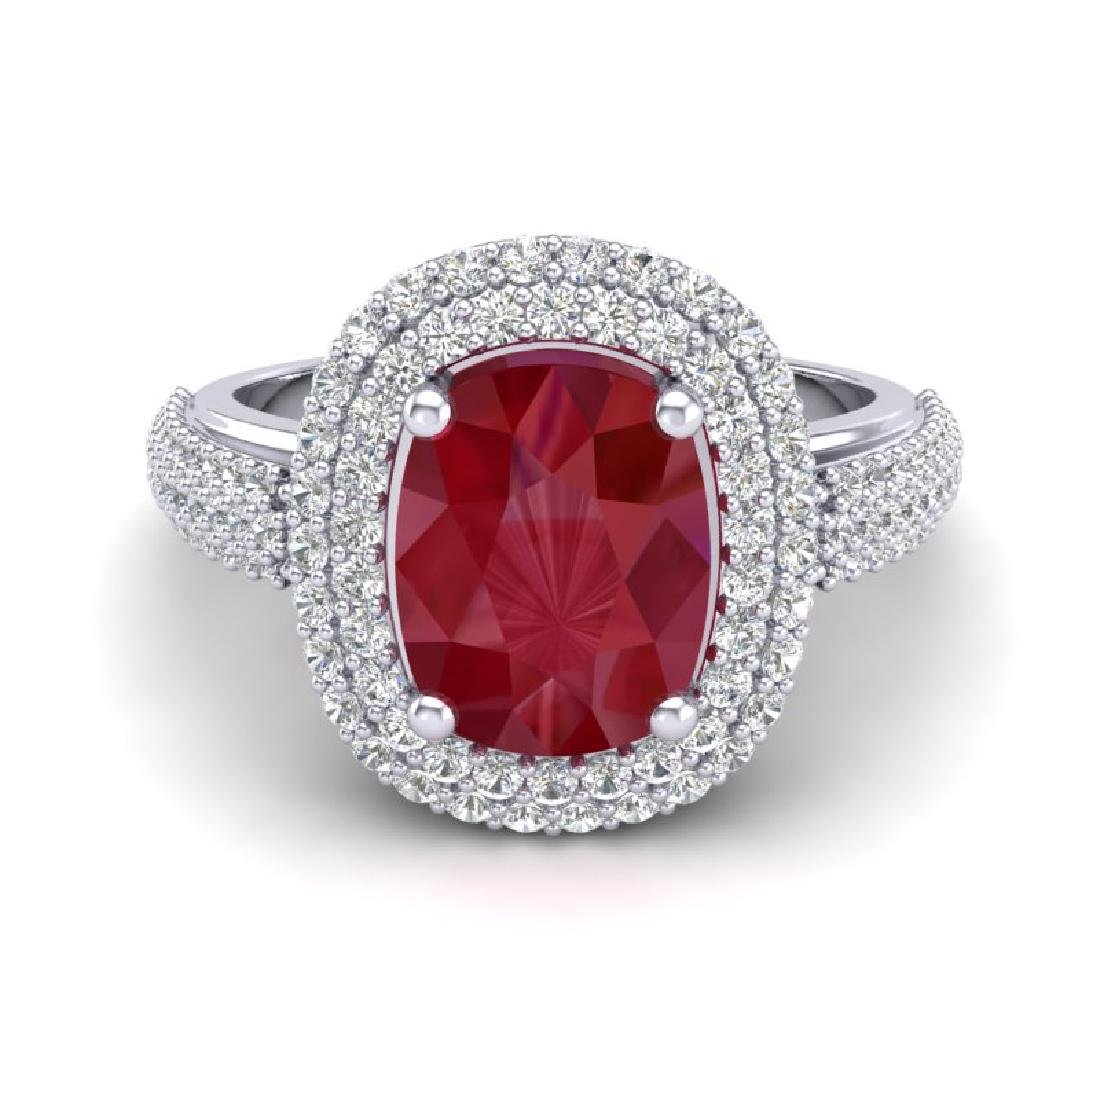 3.50 CTW Ruby & Micro Pave VS/SI Diamond Halo Ring 18K